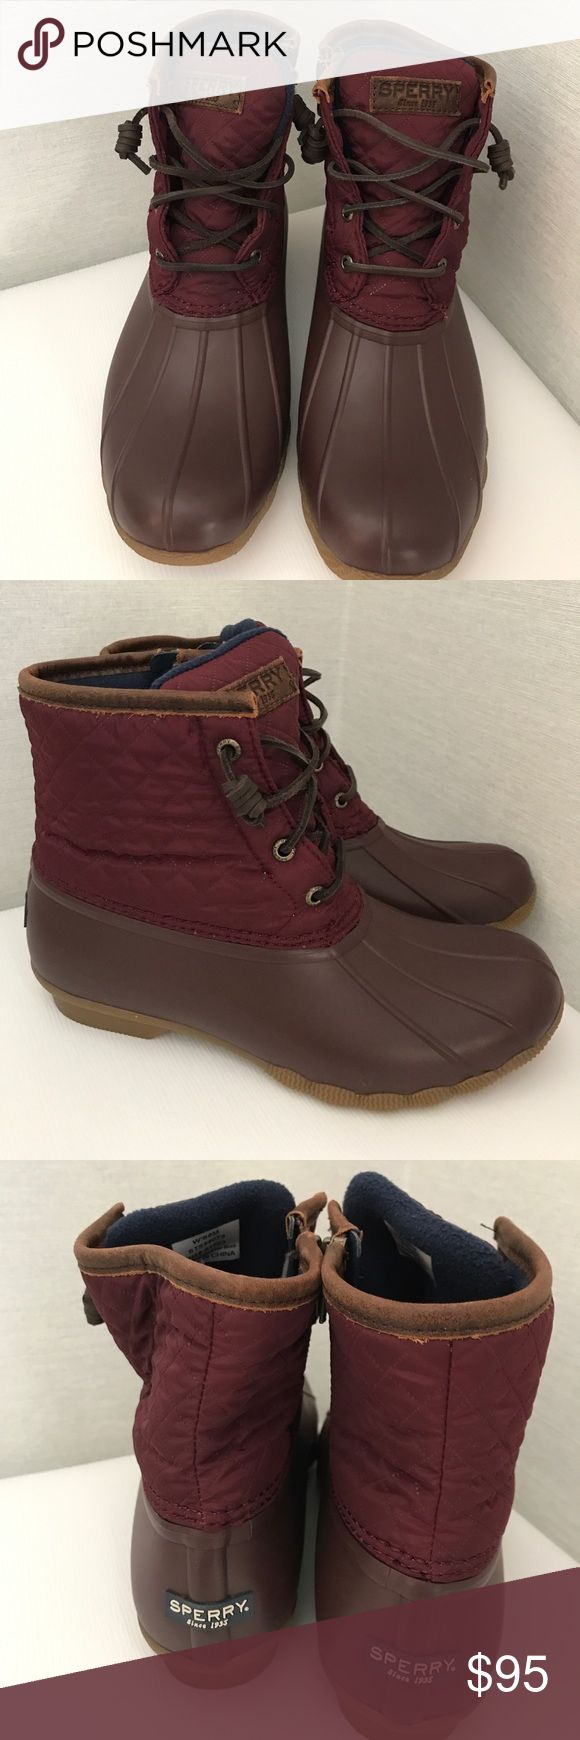 Sperry Shearwater Duck Weather Boot New never wore, no box no trades Sperry Top-Sider Shoes Winter & Rain Boots